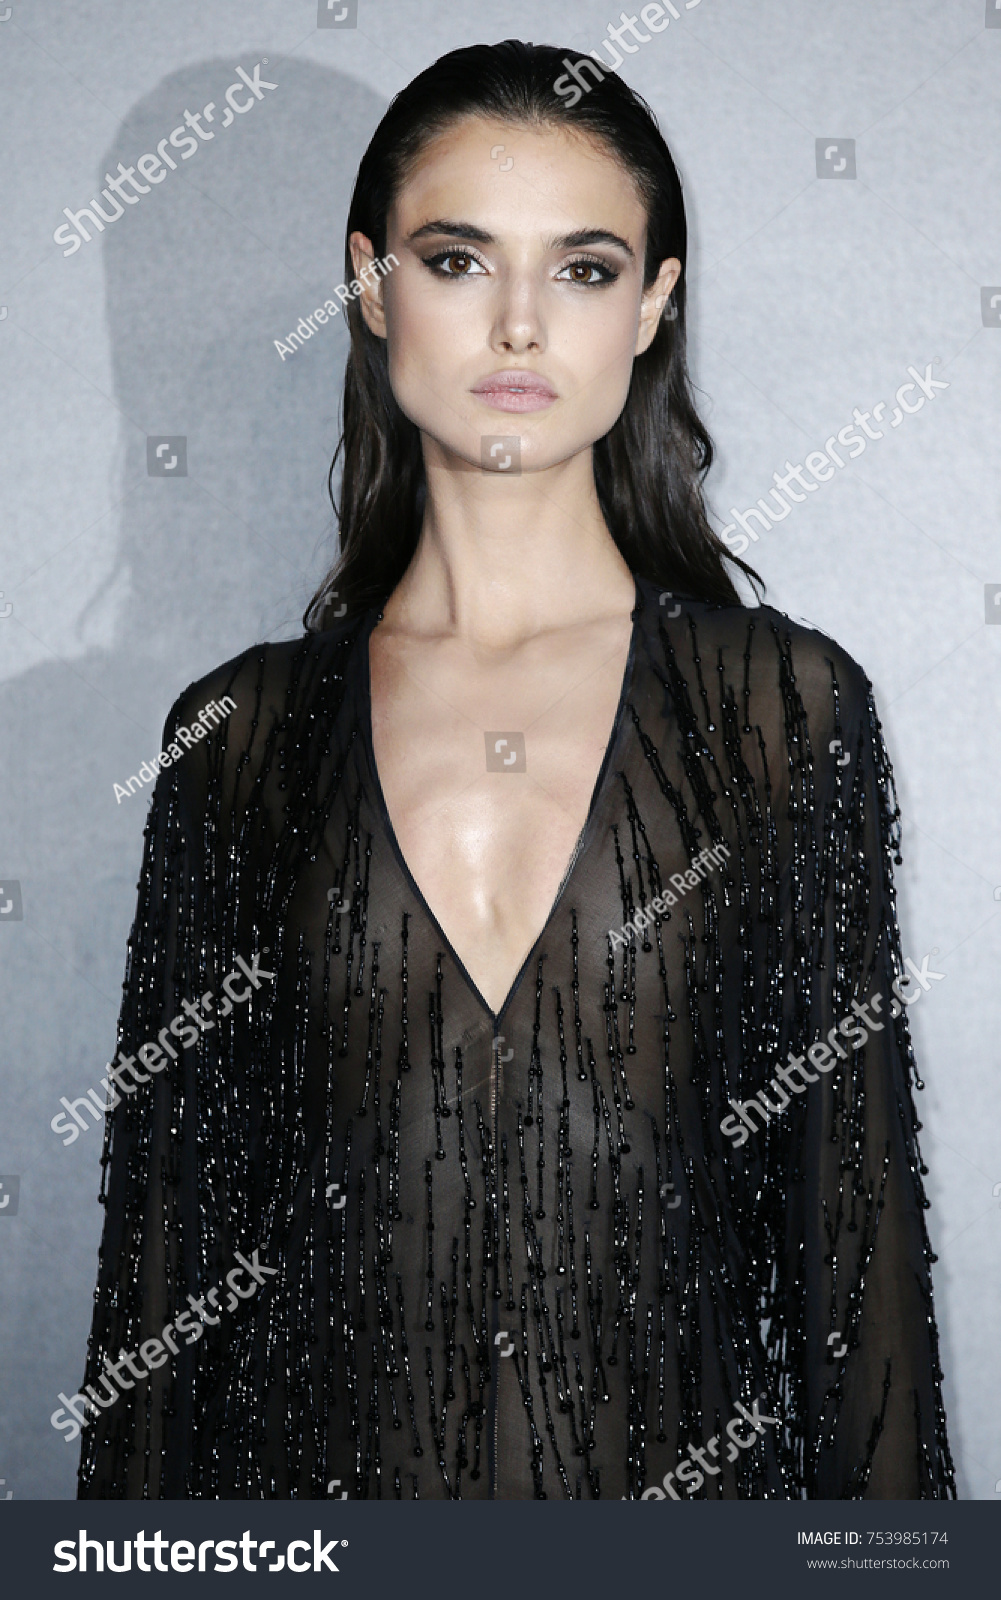 Discussion on this topic: Chantelle Paige, blanca-padilla-esp-2-2014-2017/